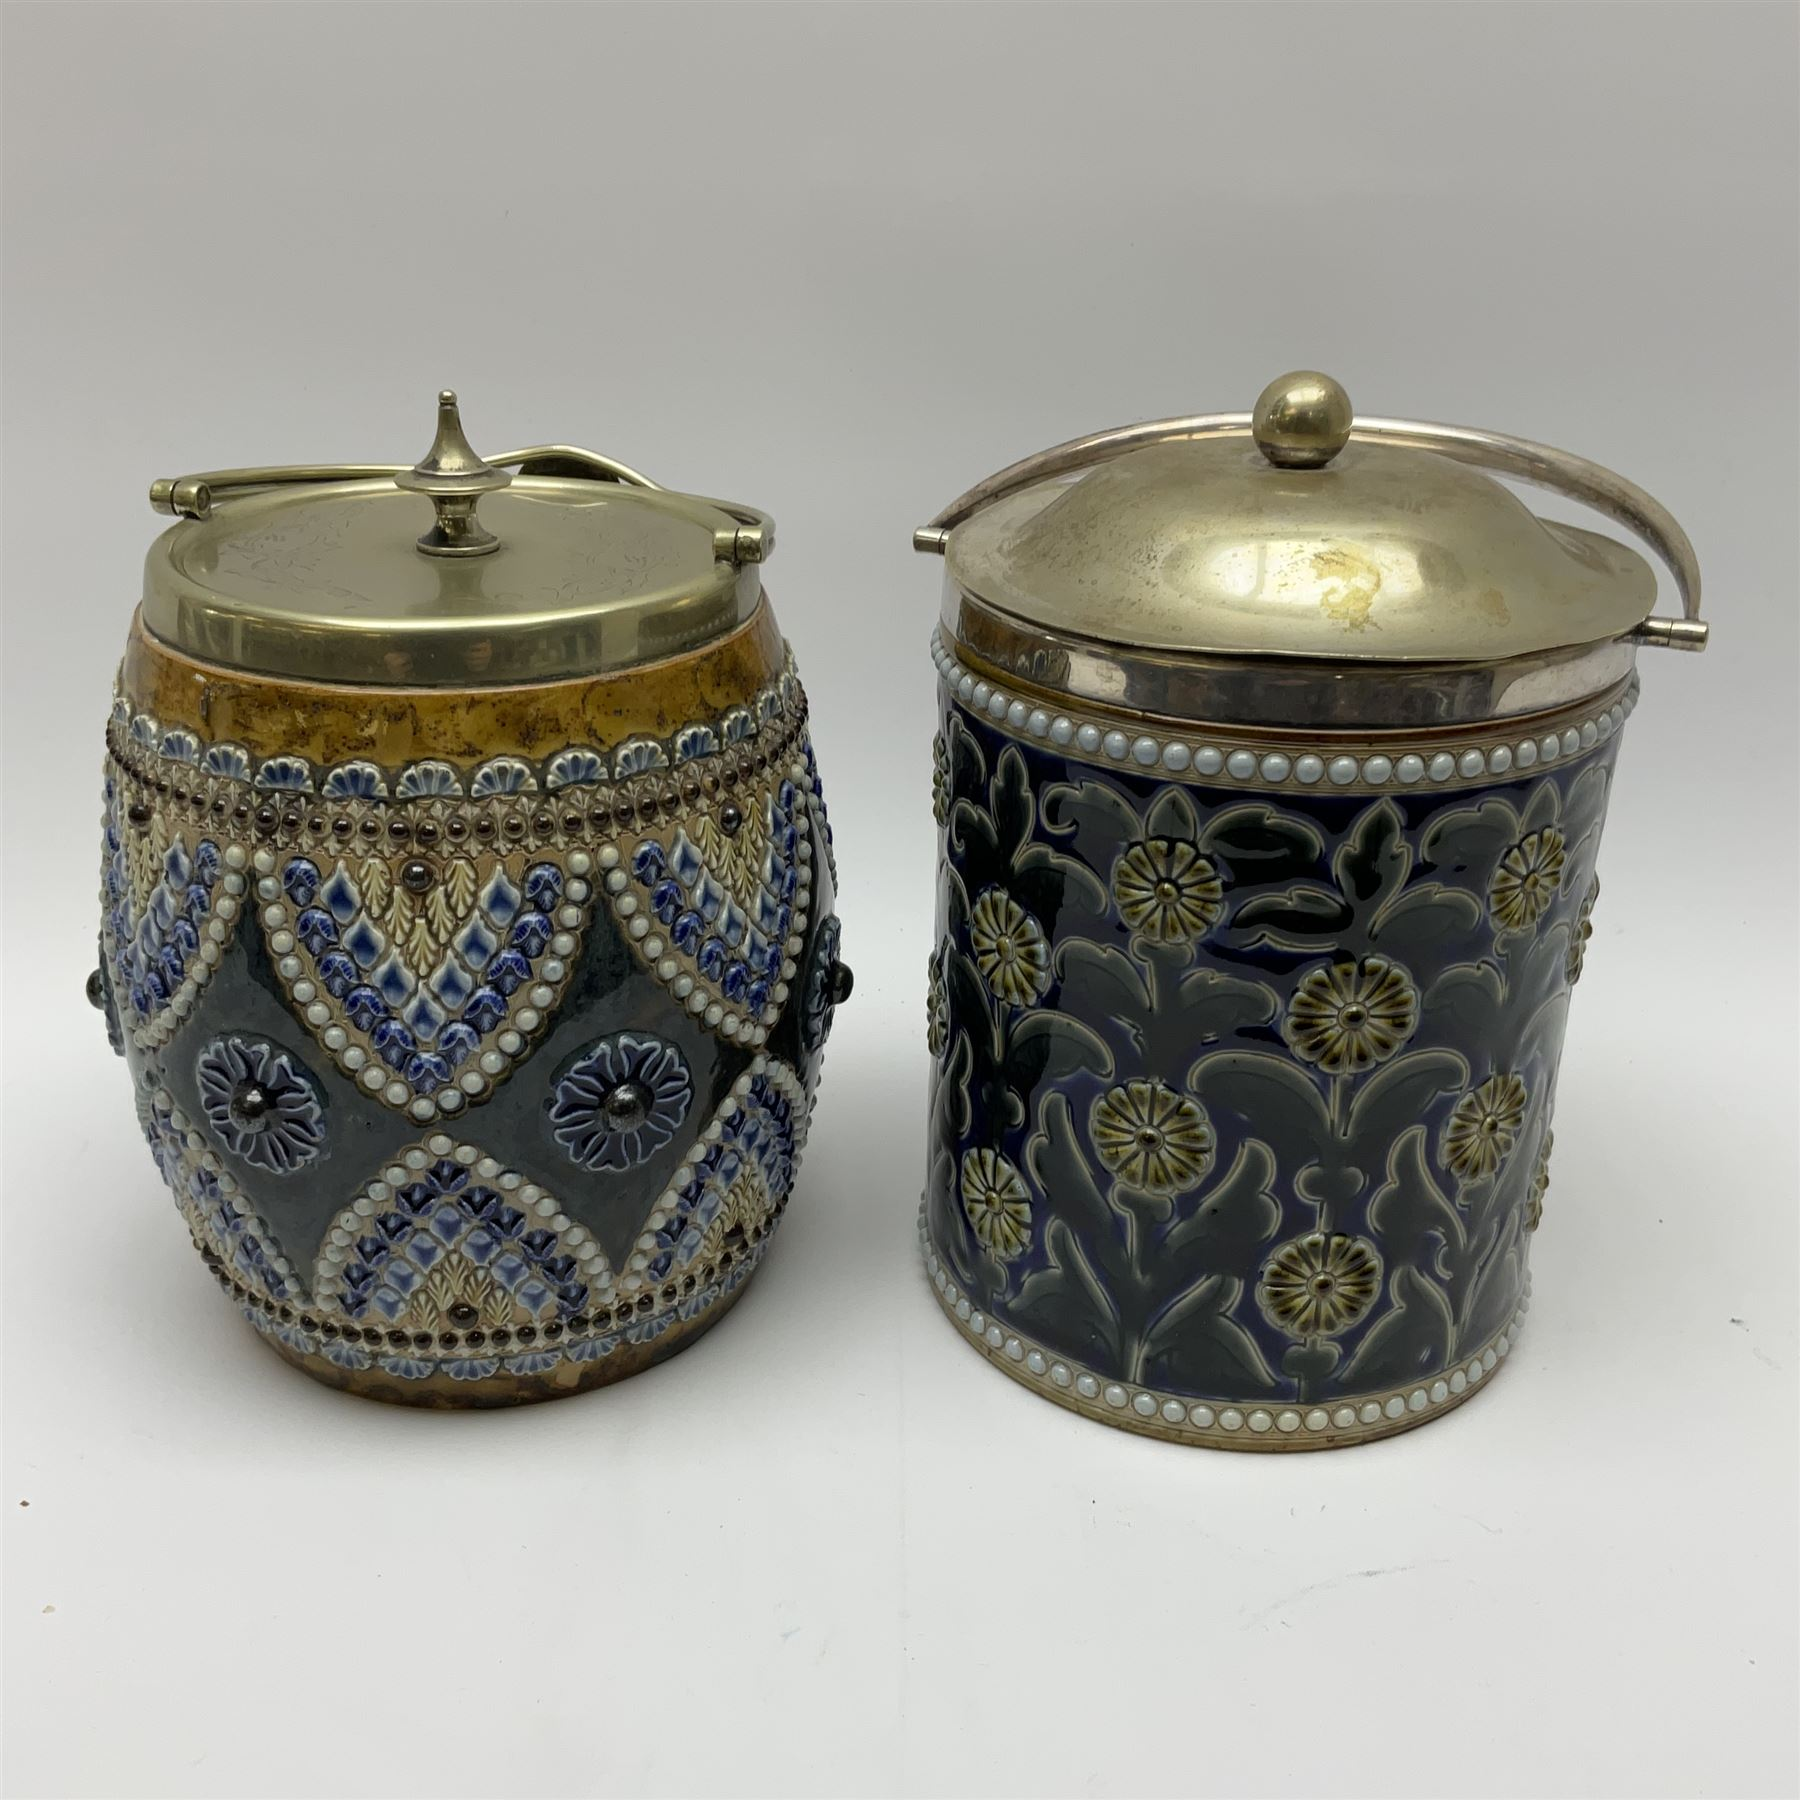 A 19th century Doulton Lambeth stoneware tobacco jar with a silver plate lid - Image 4 of 5